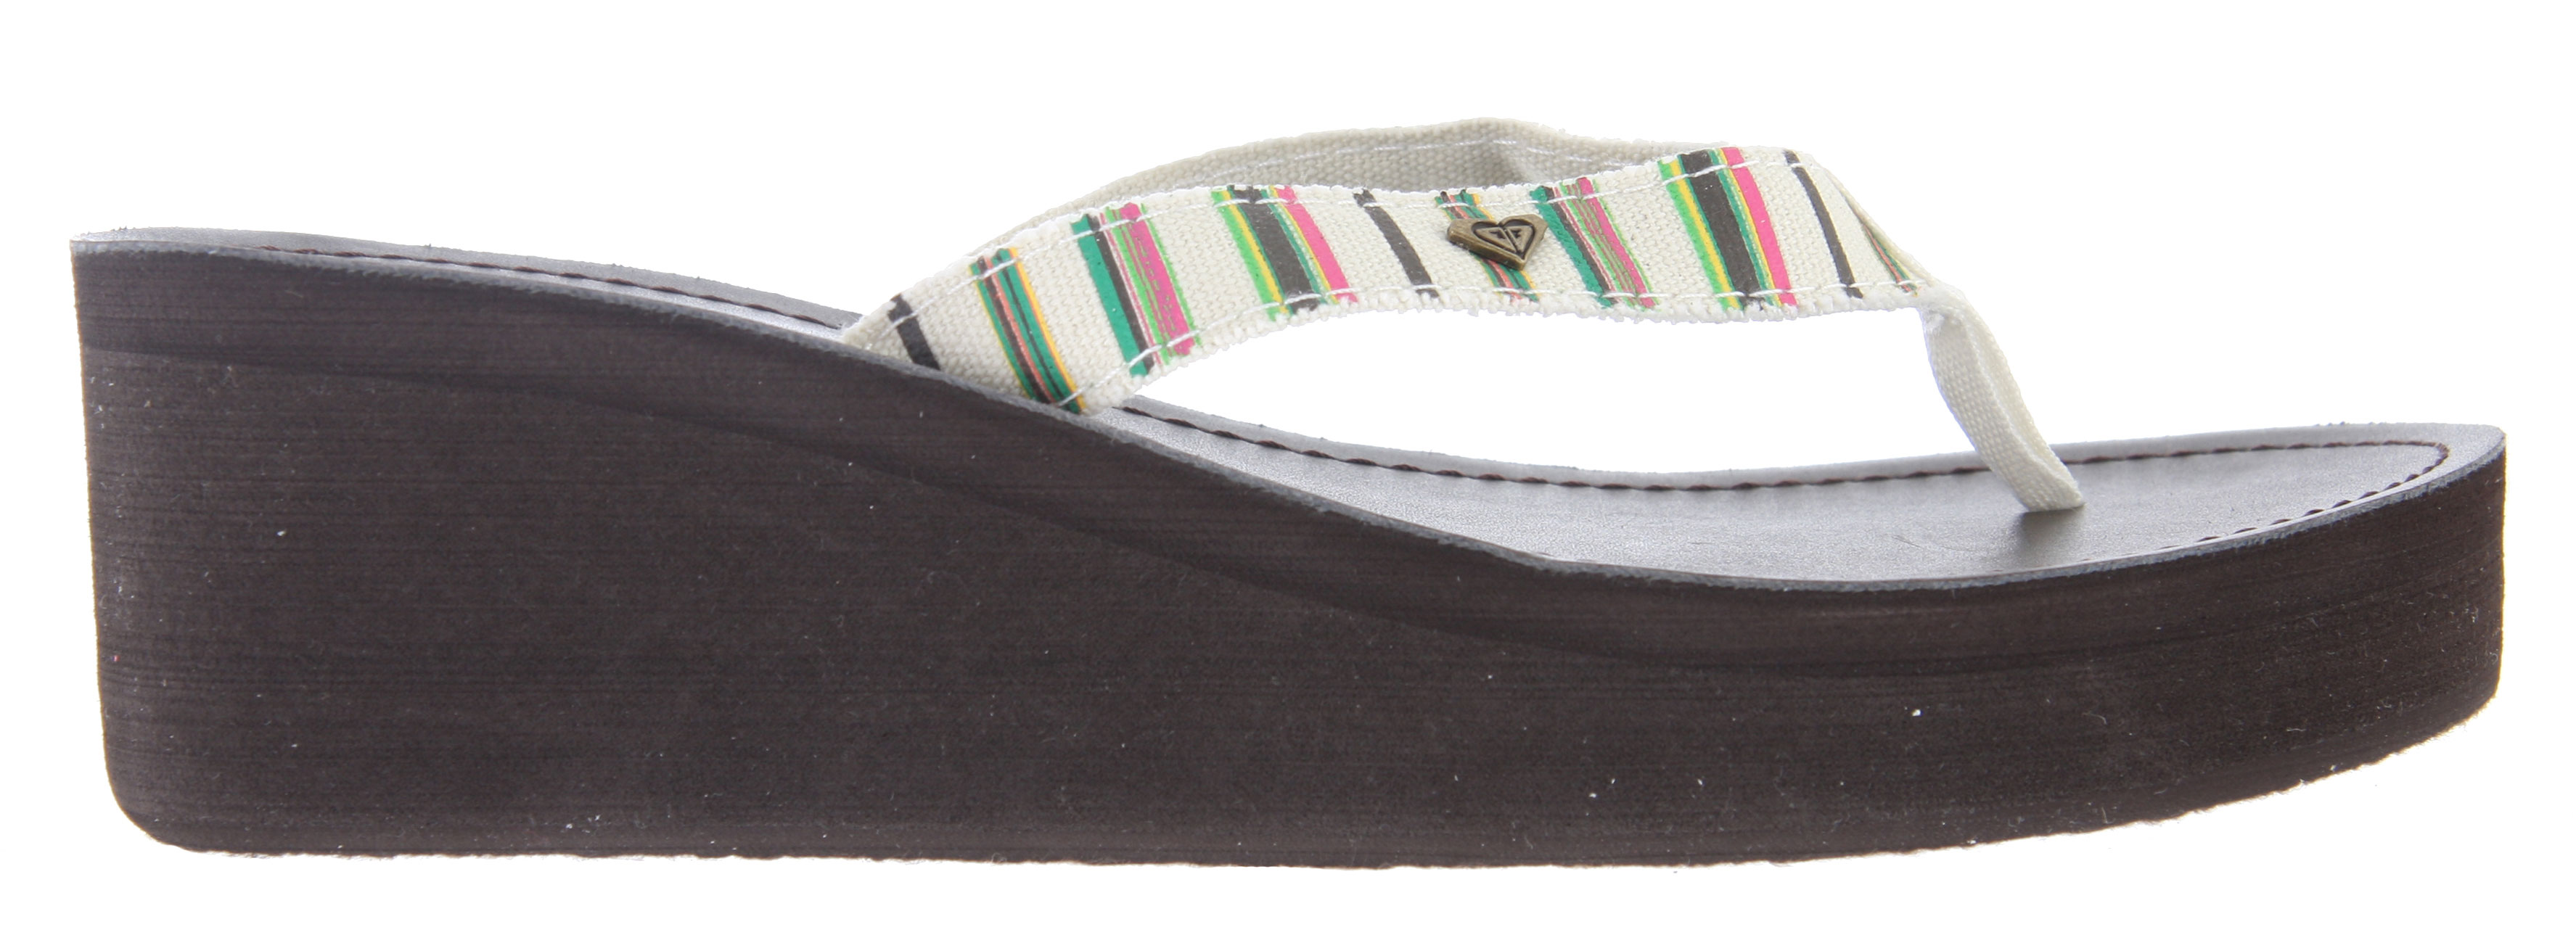 Surf Key Features of the Roxy Siesta Sandals: Soft printed canvas upper with frayed edges Soft poly-web toe post Metal heart pin Soft canvas insole with light contour Soft layer of eva under insole for comfort EVA wedge and outsole - $34.00